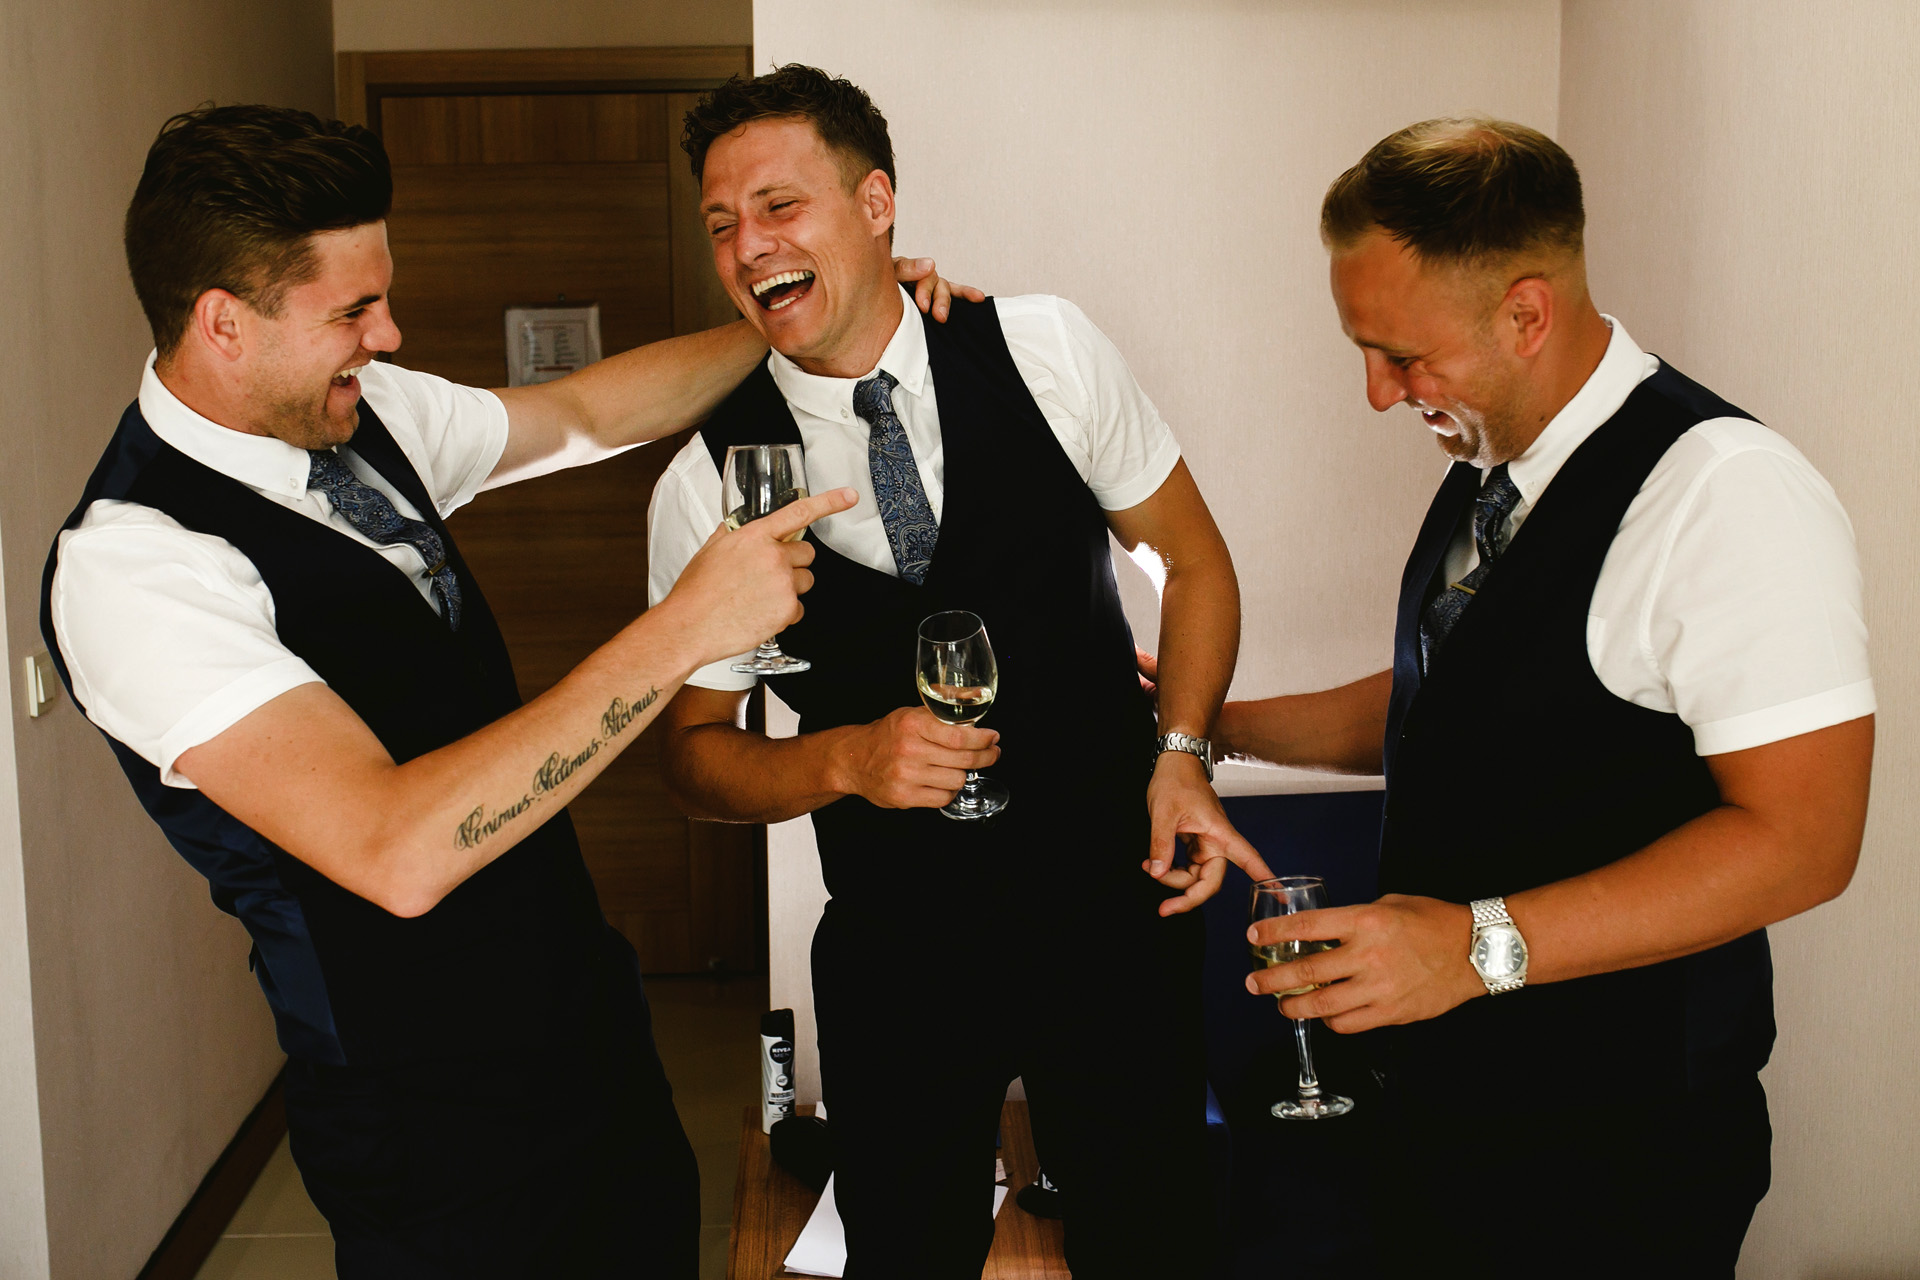 Turkey Elopement Getting Ready Groom Photo | with two of his friends, there was a small toast pre-ceremony